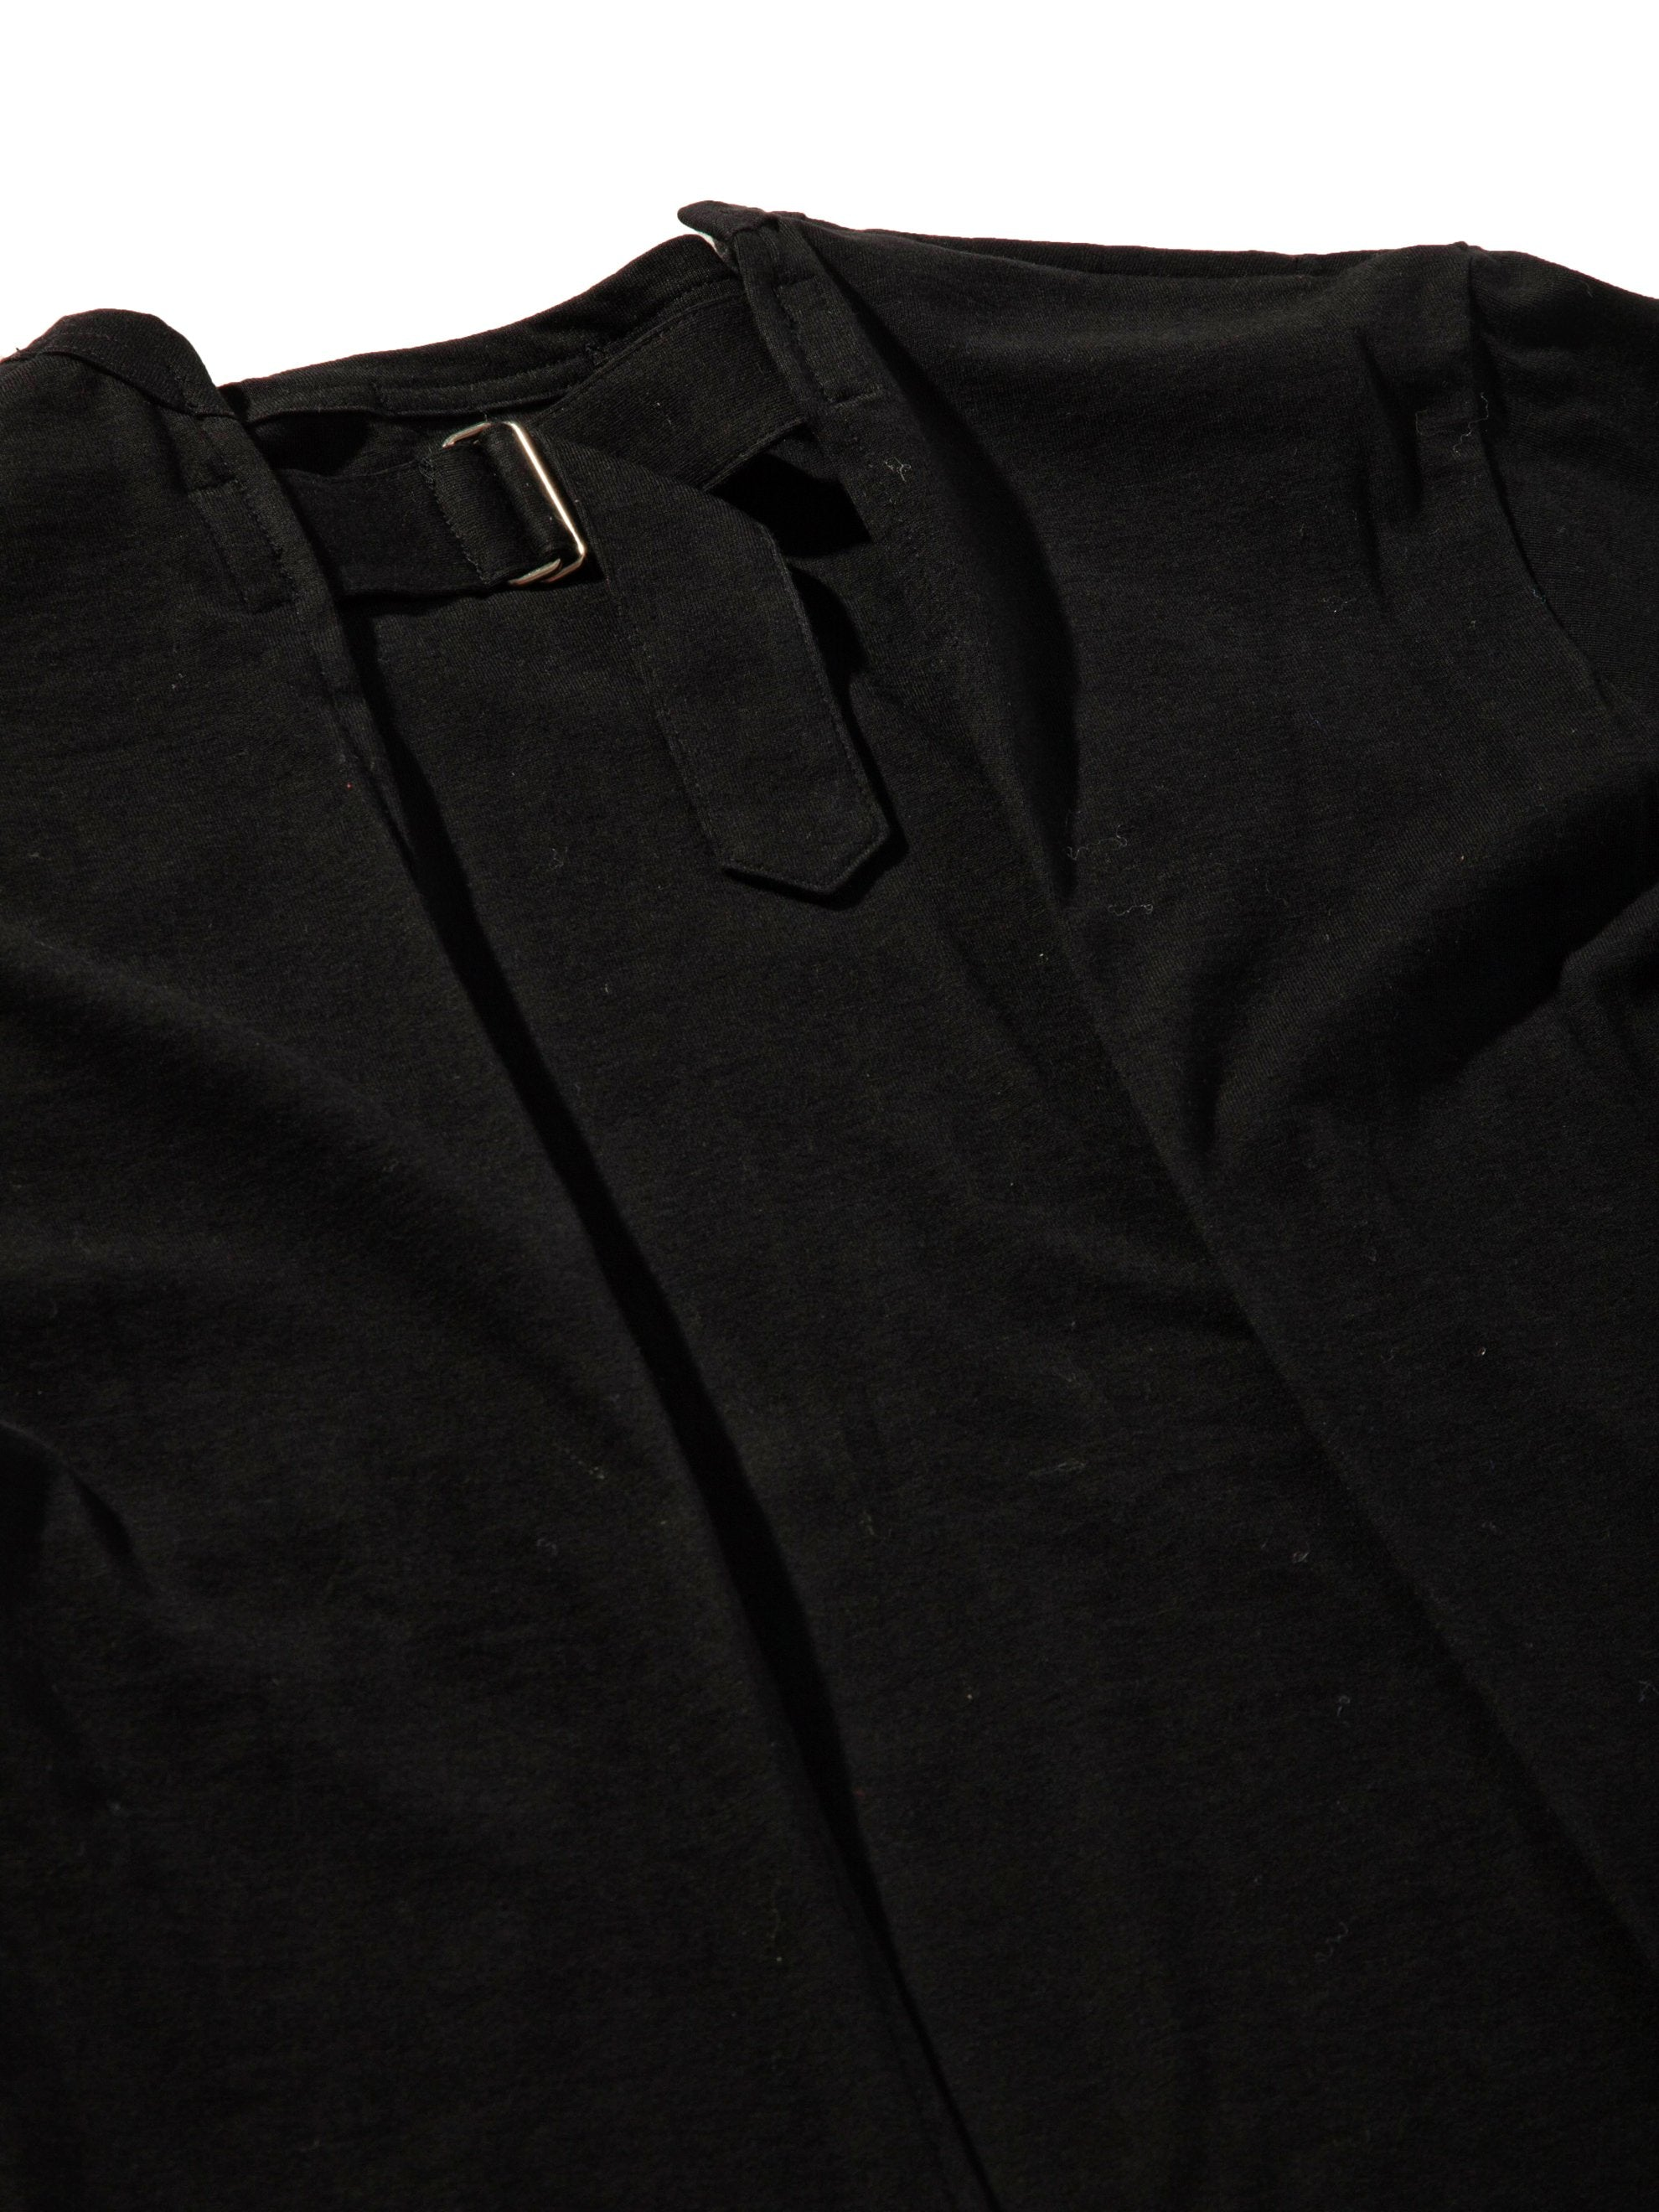 Black Slit Back Buckle T-Shirt 7